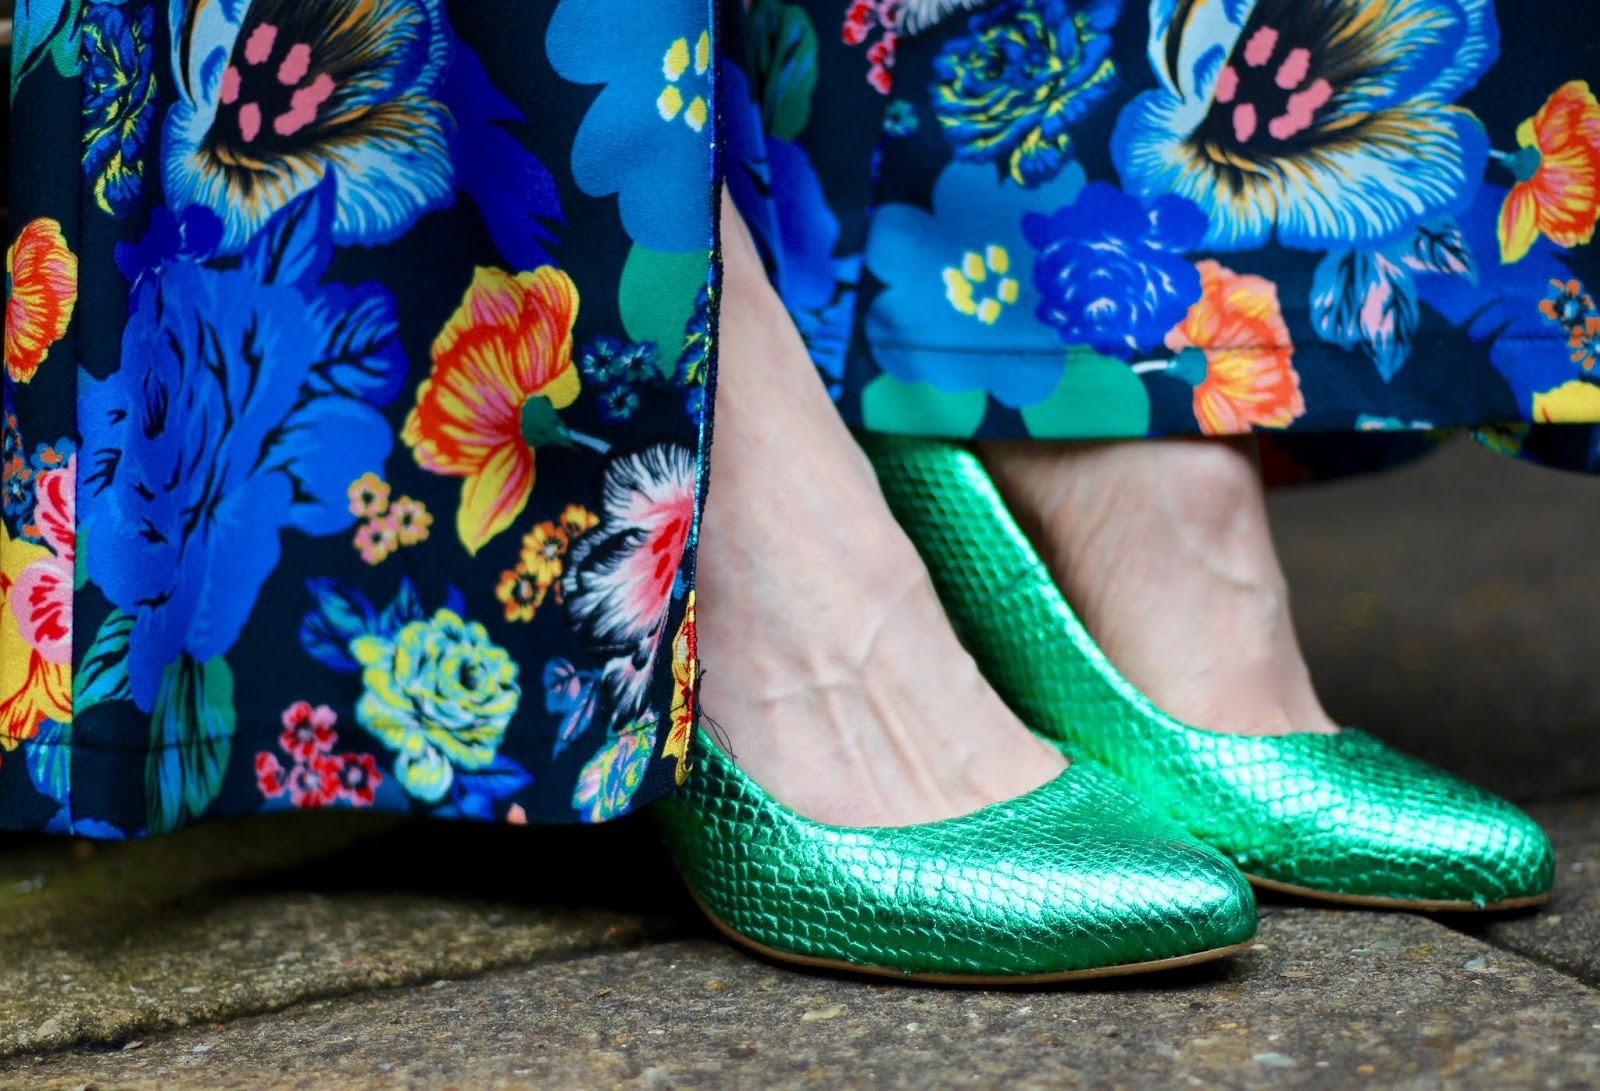 Blue Floral Topshop Jumpsuit and Green Metallic Shoes | Fake Fabulous